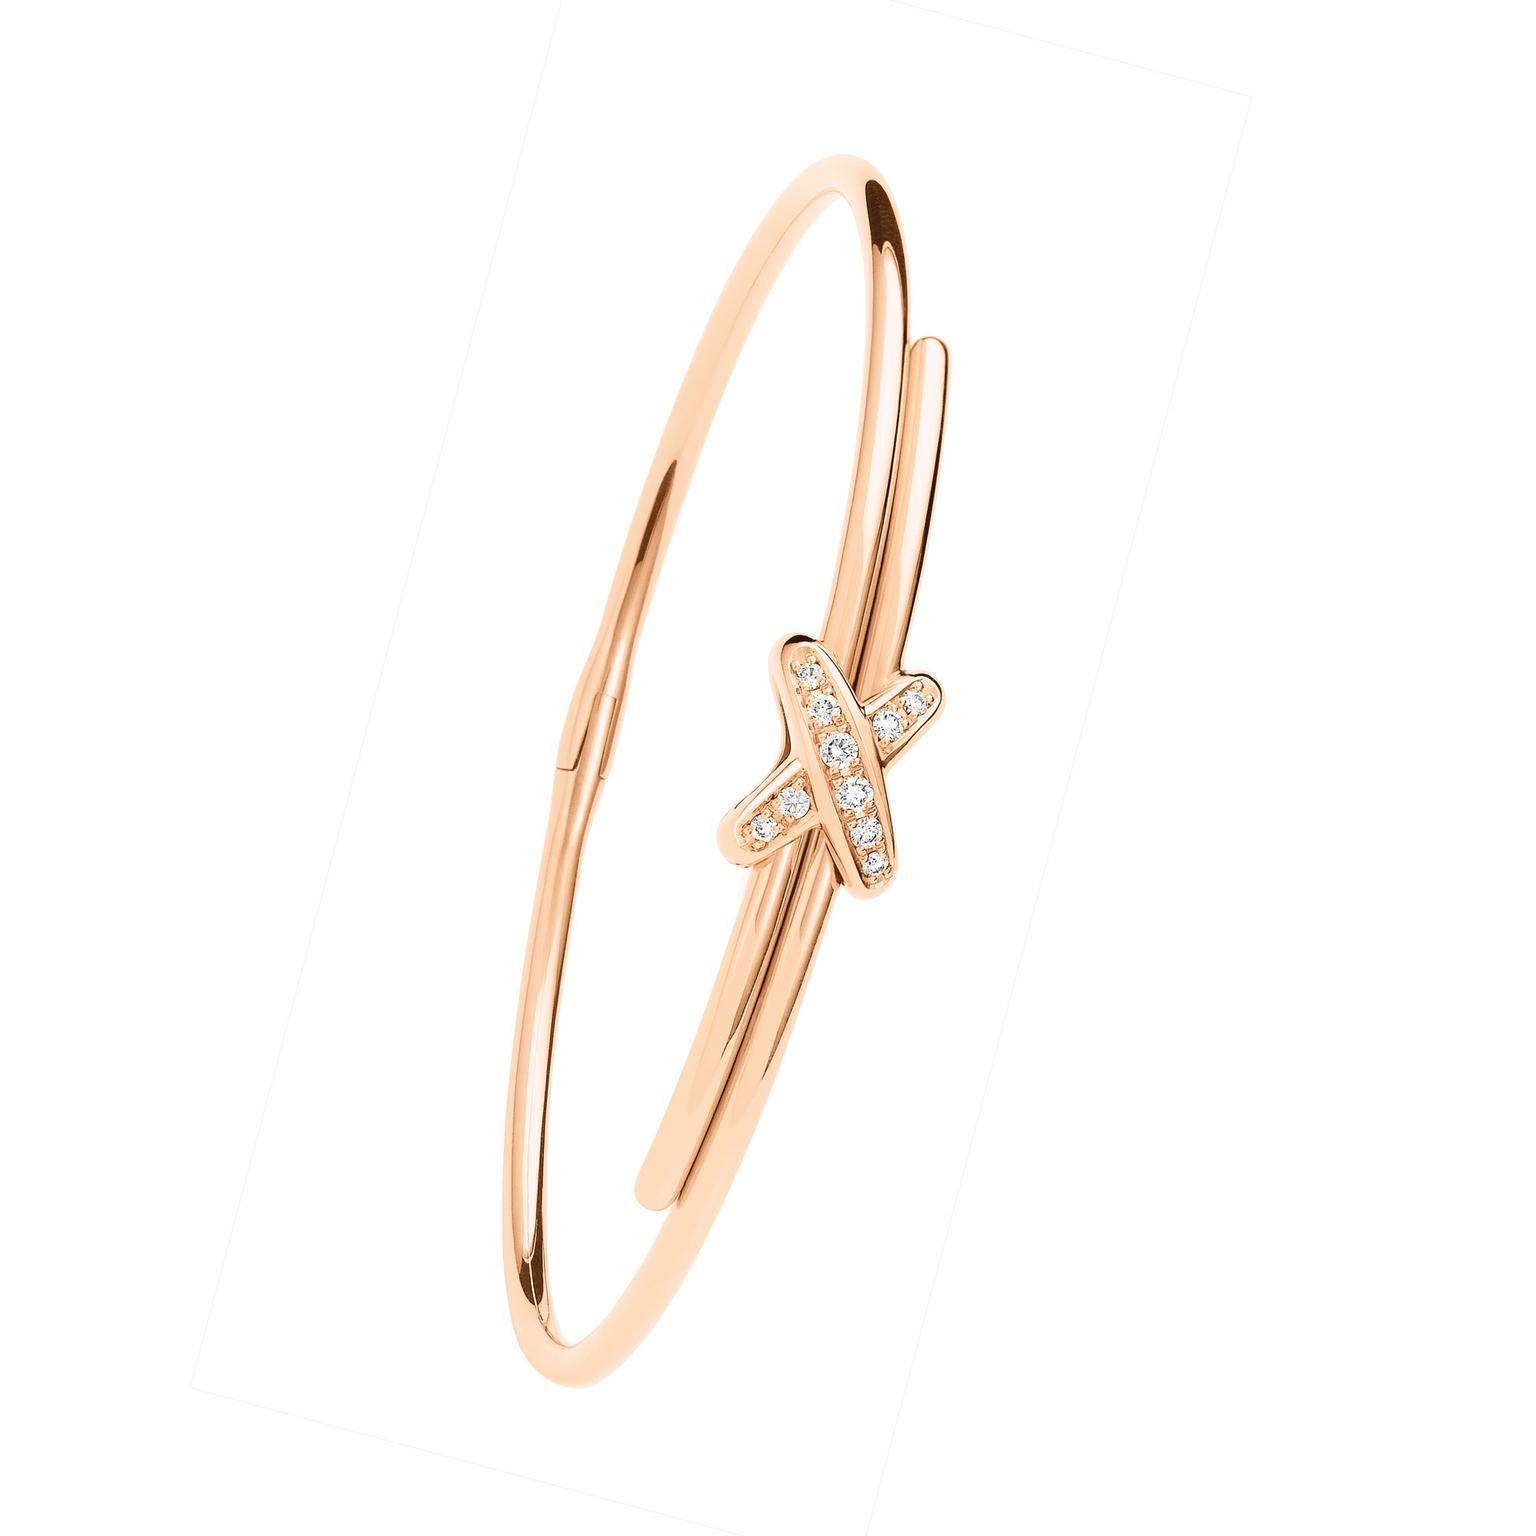 Chaumet Liens rose gold and diamond bracelet